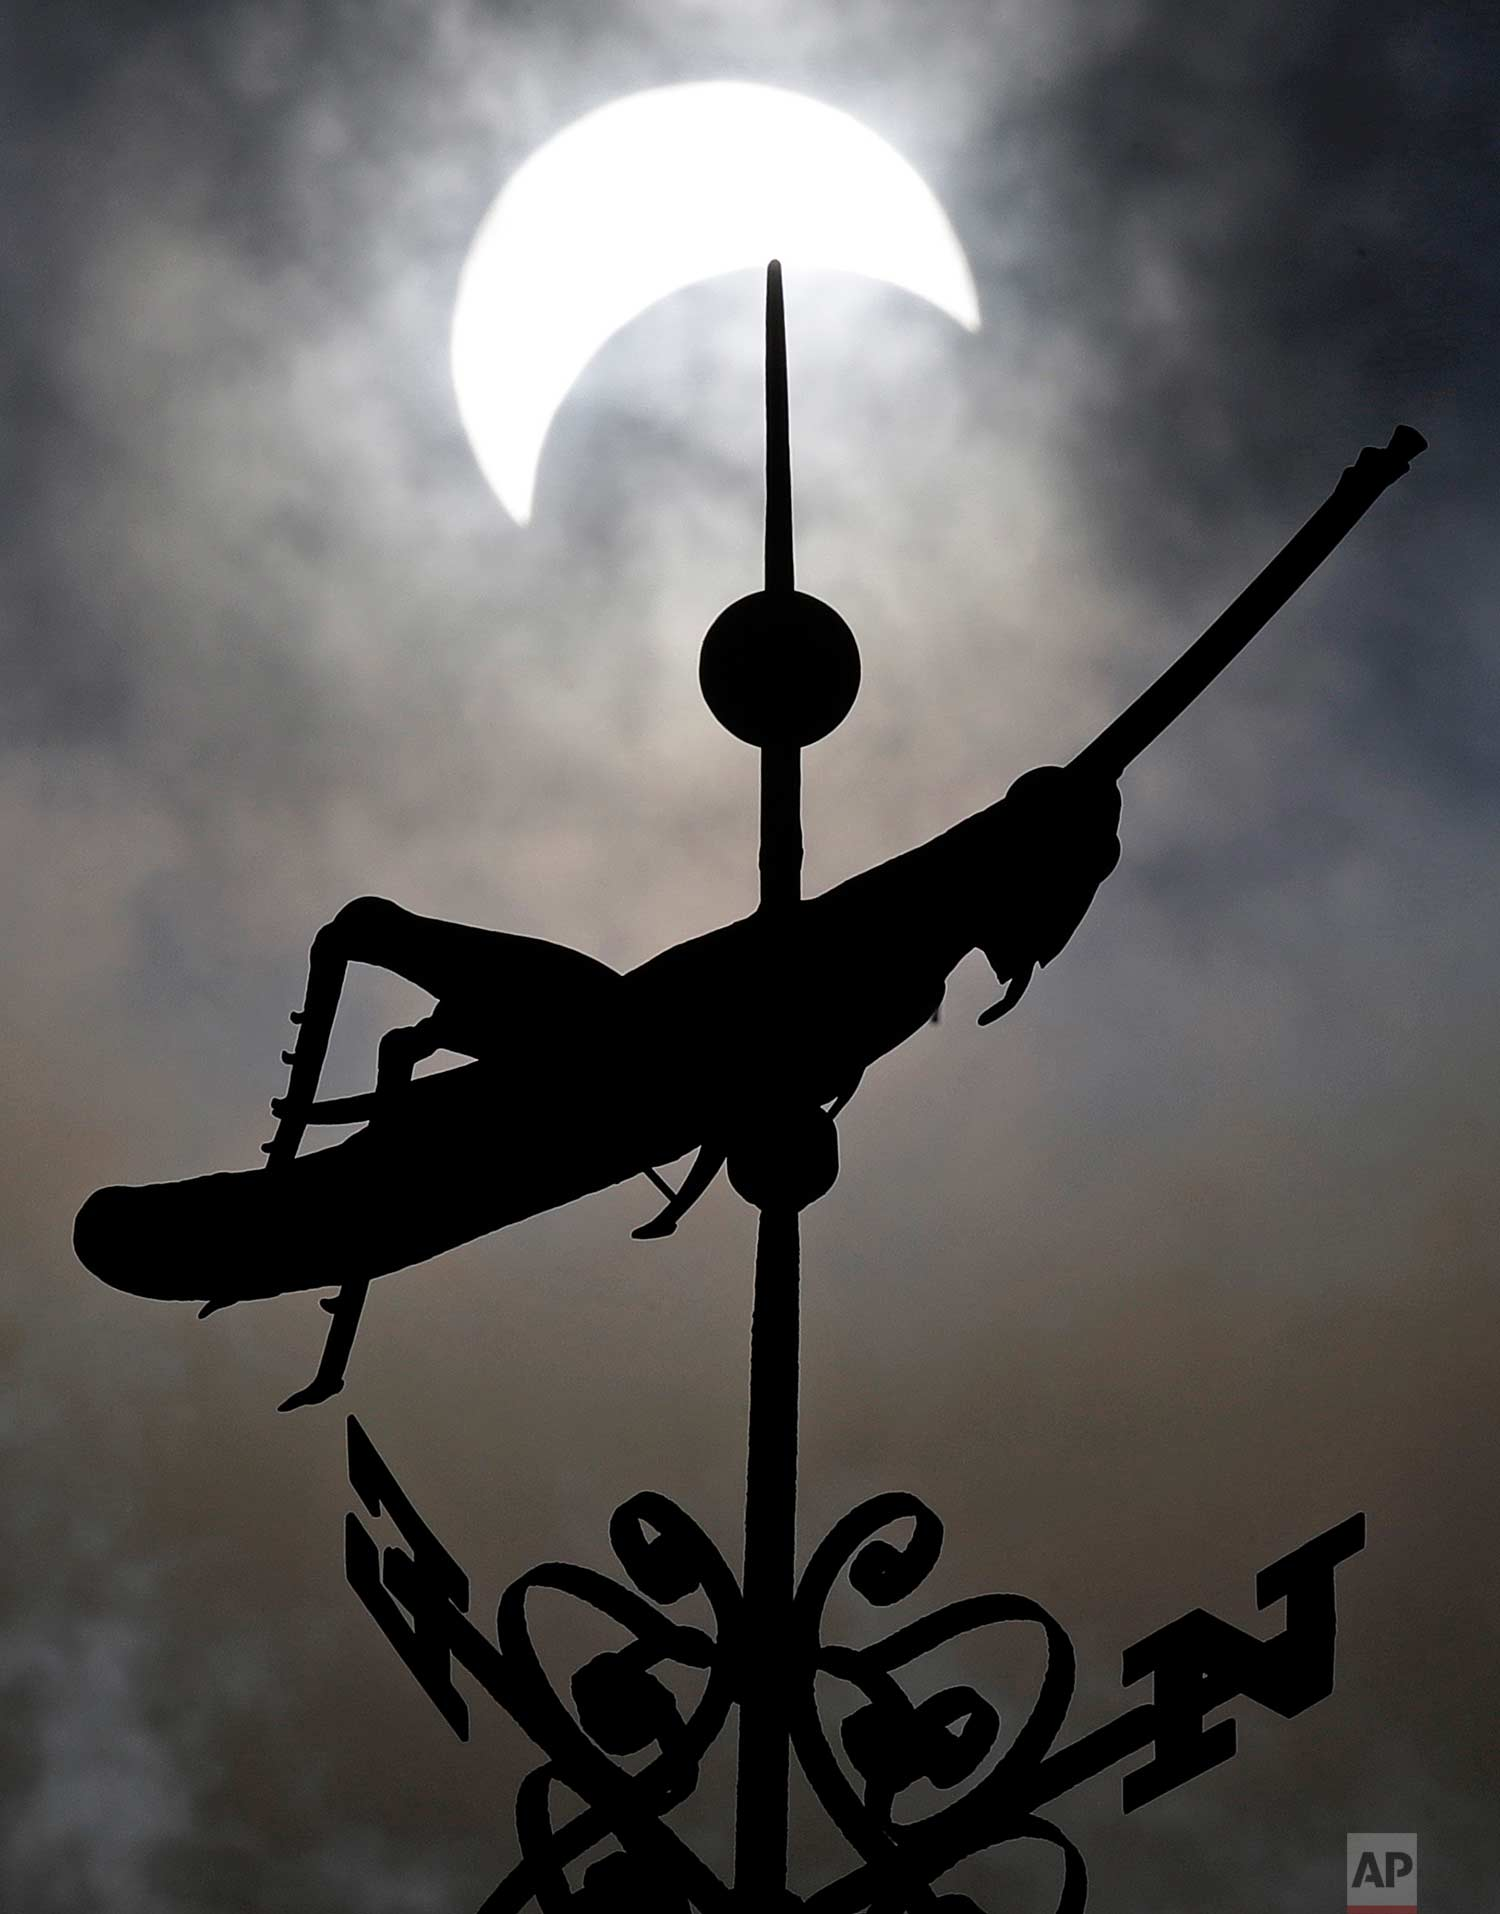 A partial solar eclipse passes over the golden grasshopper weathervane atop historic Faneuil Hall on a cloudy afternoon in Boston, Monday, Aug. 21, 2017. (AP Photo/Charles Krupa)